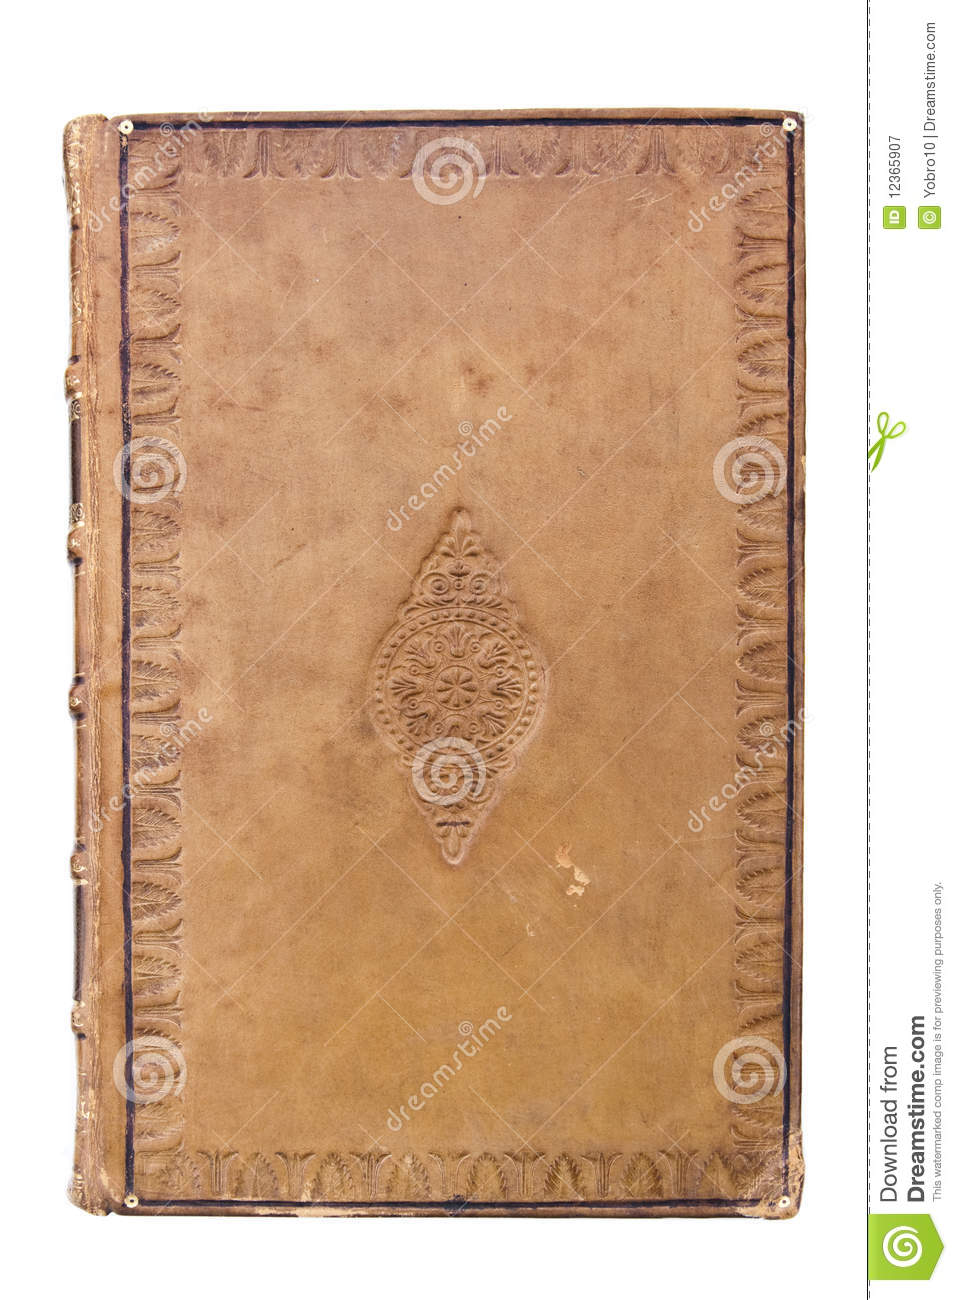 Leather Covered Book : Antique leather book cover stock image of